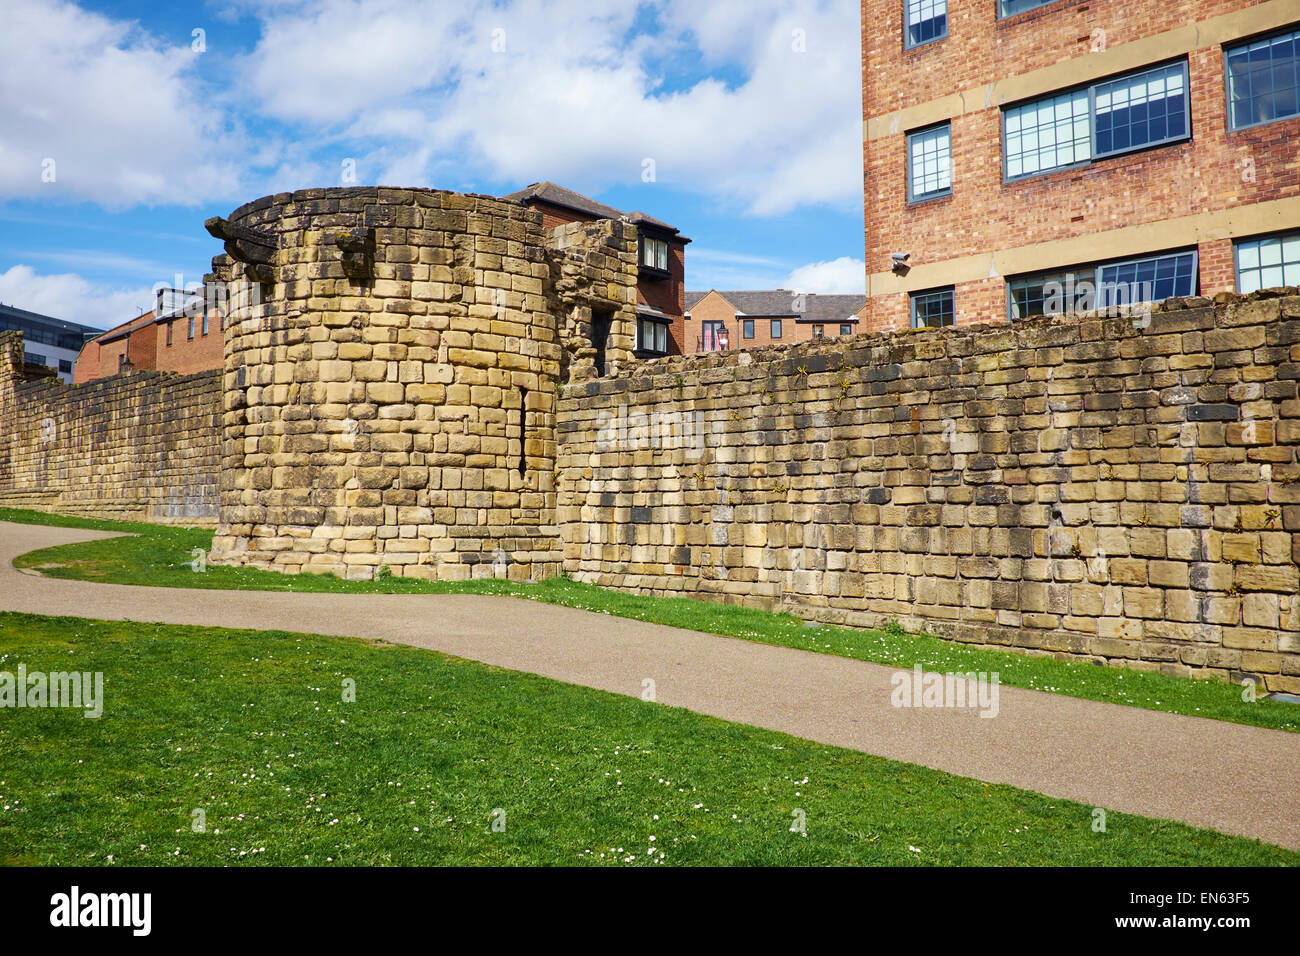 The Durham Tower Built In The Late 13th Century Part Of The Town Walls Newcastle Upon Tyne UK - Stock Image